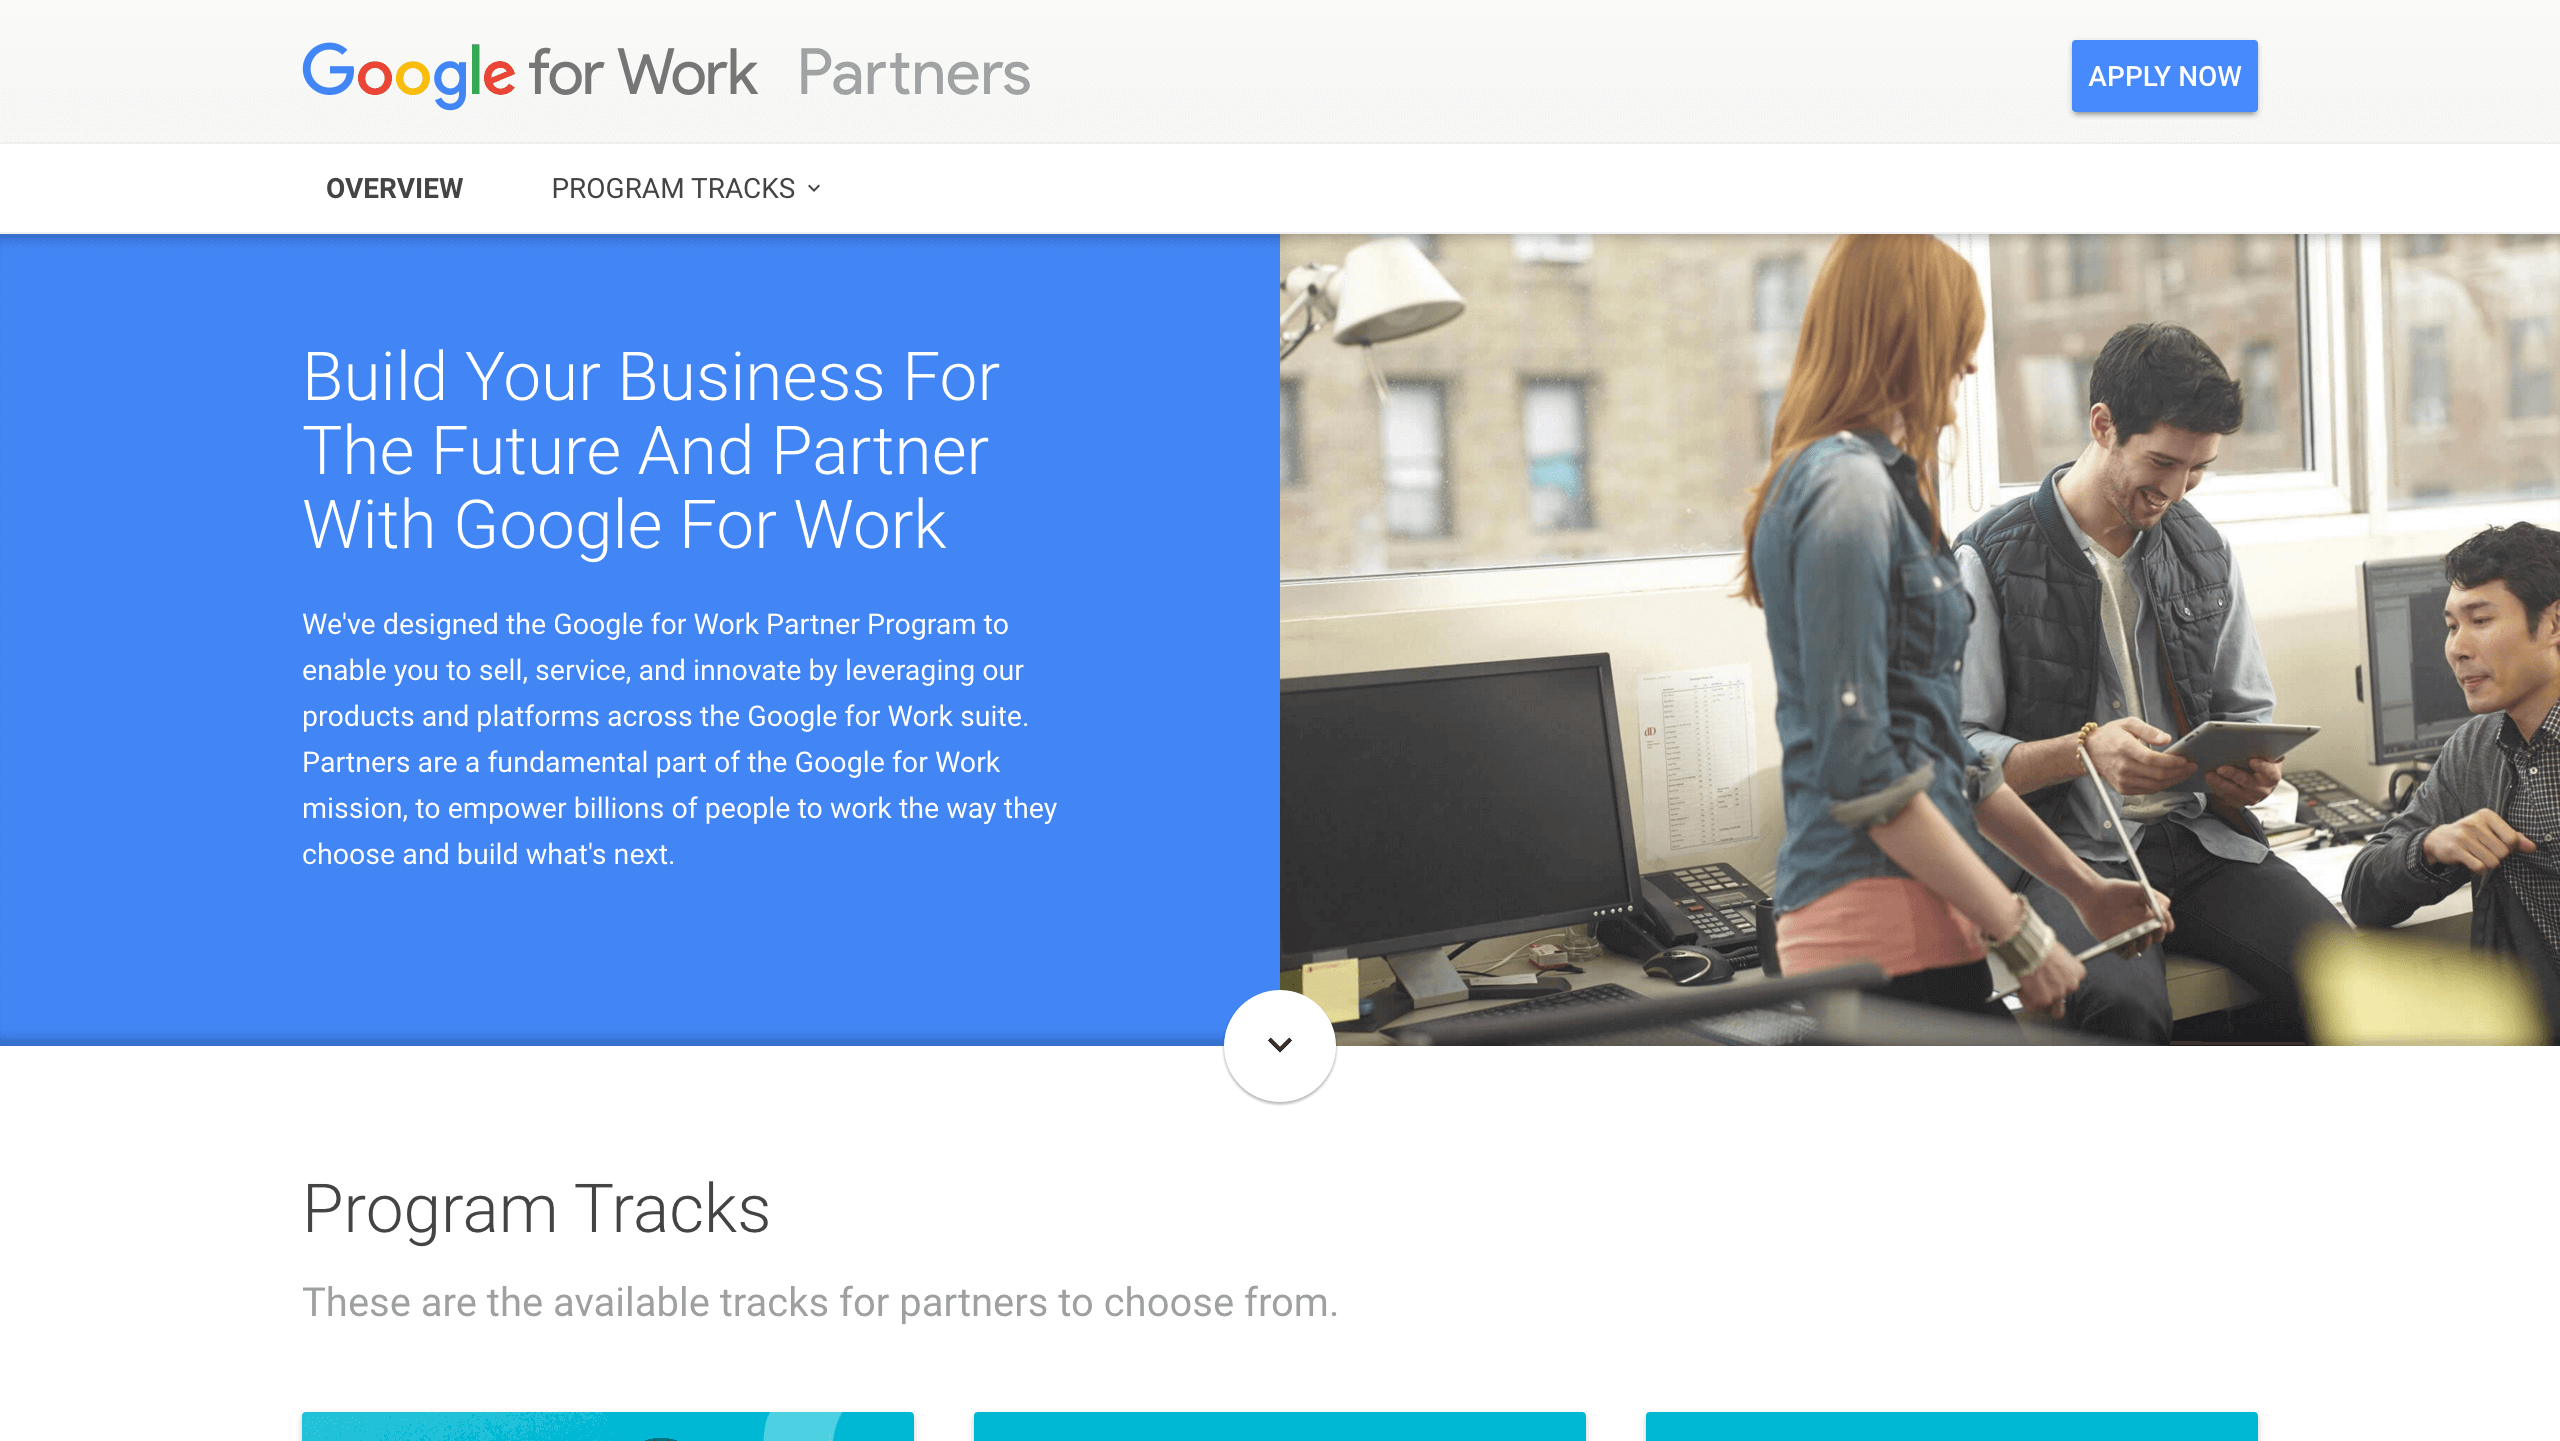 Google for Work: Partners